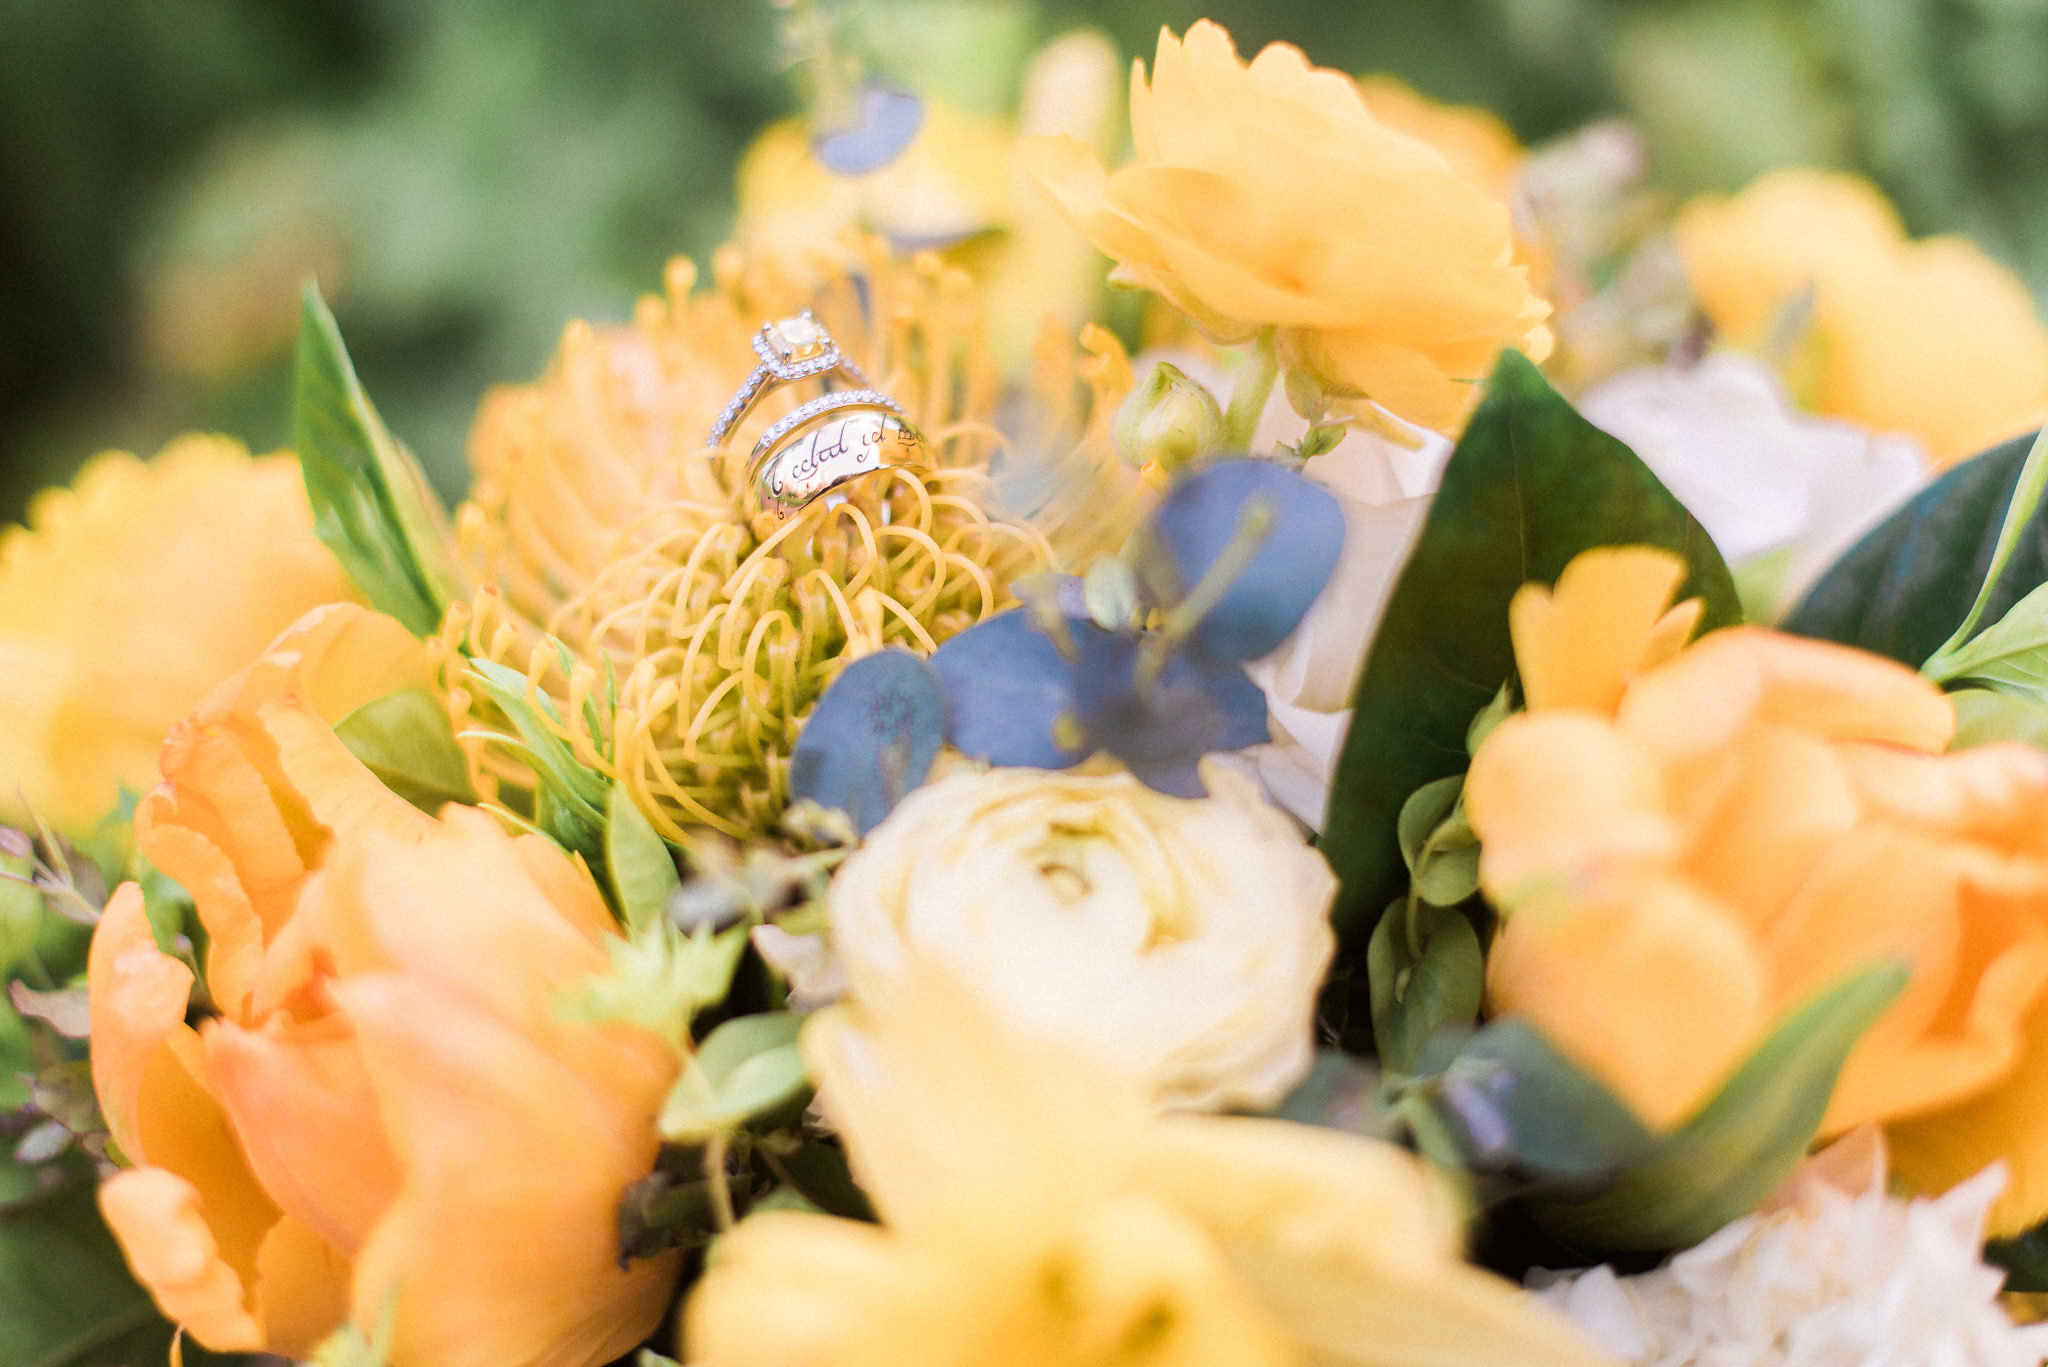 santa-barbara-elopement-elope-wedding-planner-planning-coordinator-day-of-ellwood-bluffs-ocean-view-yellow (4).jpg